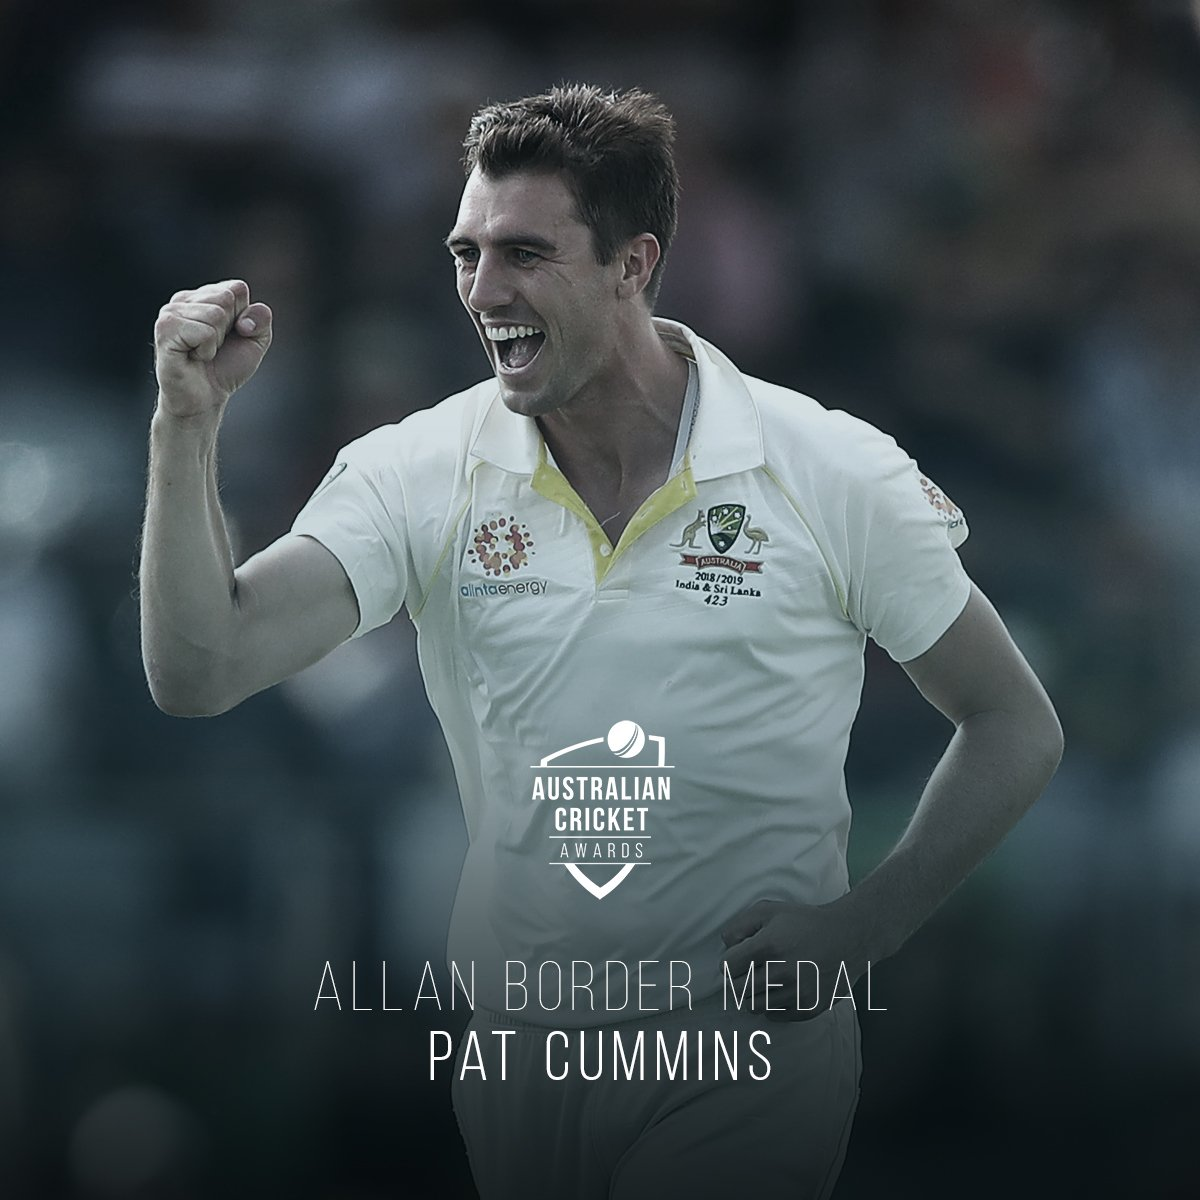 The bowlers have taken over. Pat Cummins is the Allan Border Medalist!   A complete summary HERE -  http:// cricket.com.au/news/pat-cummi     … #AusCricketAwards <br>http://pic.twitter.com/YZjCYpces7